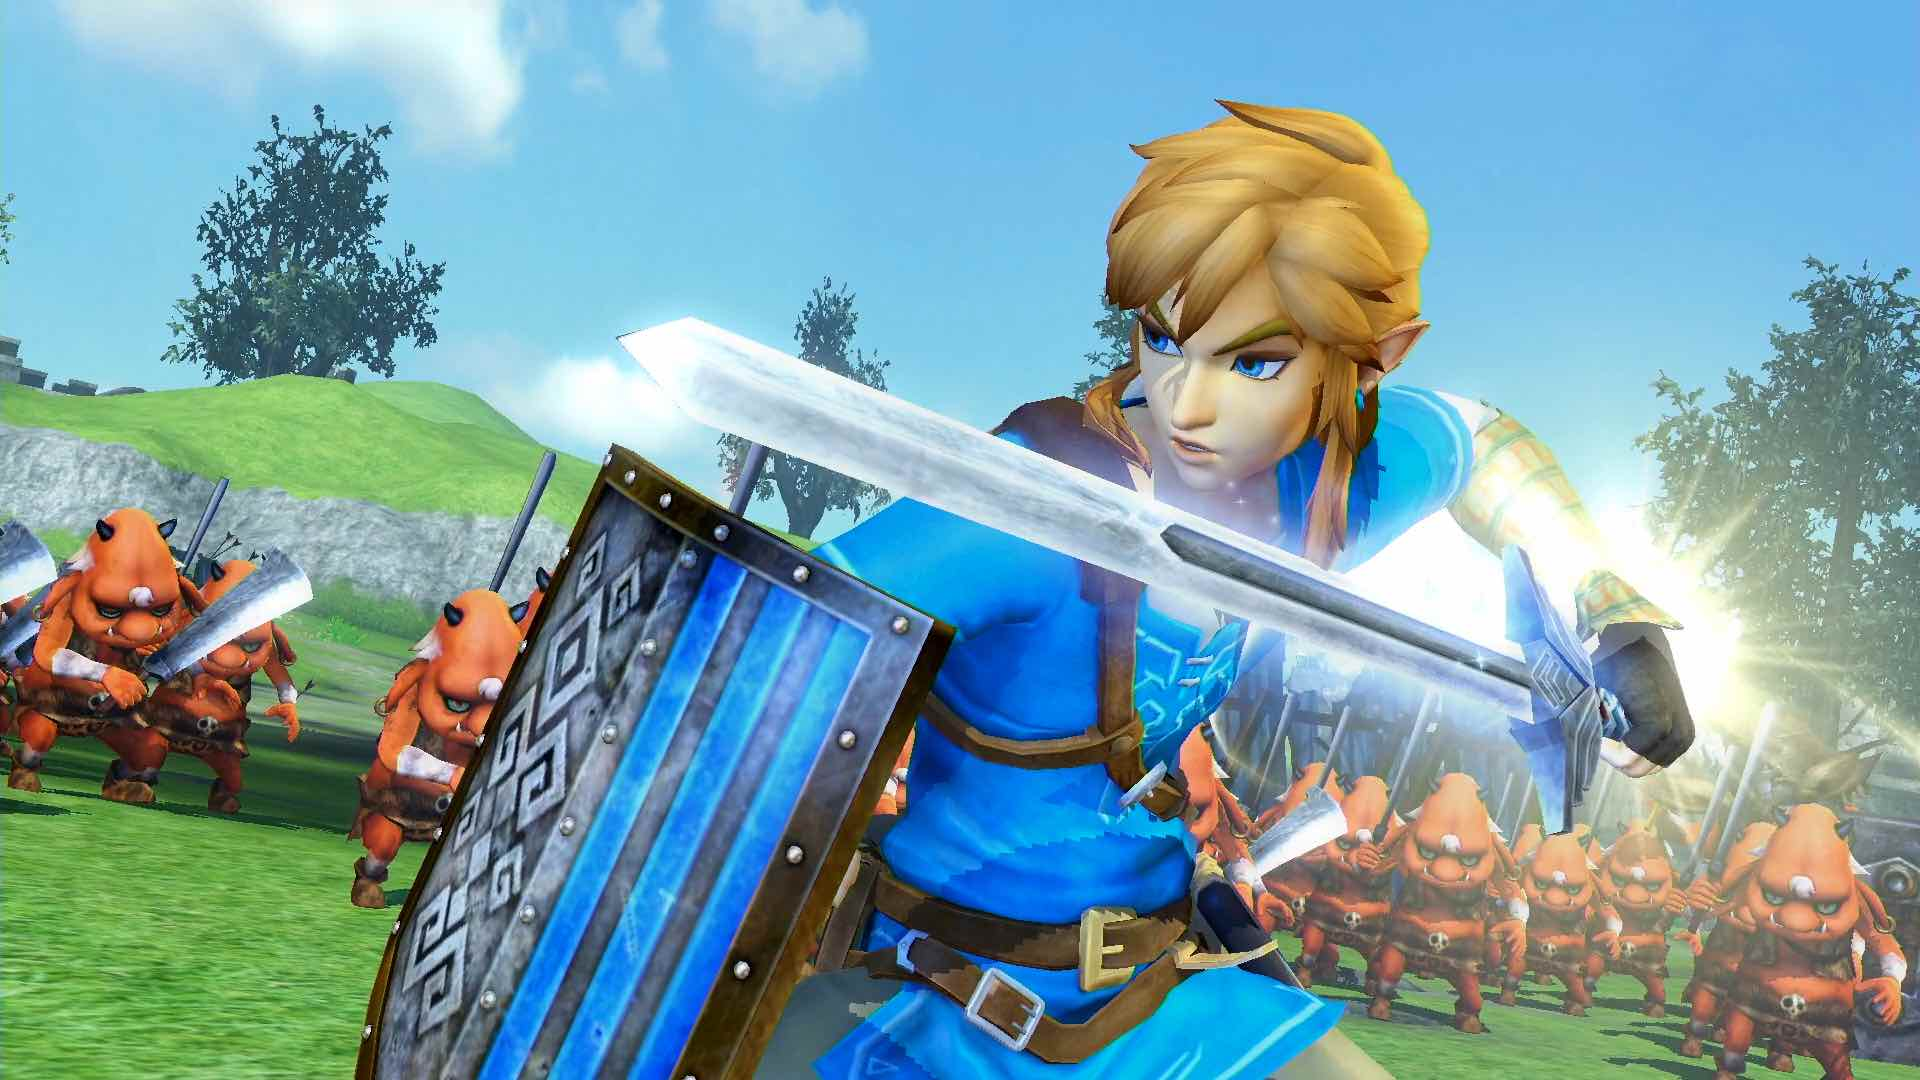 19baae72fe6 Hyrule Warriors  Definitive Edition Charges Into Battle On Nintendo ...